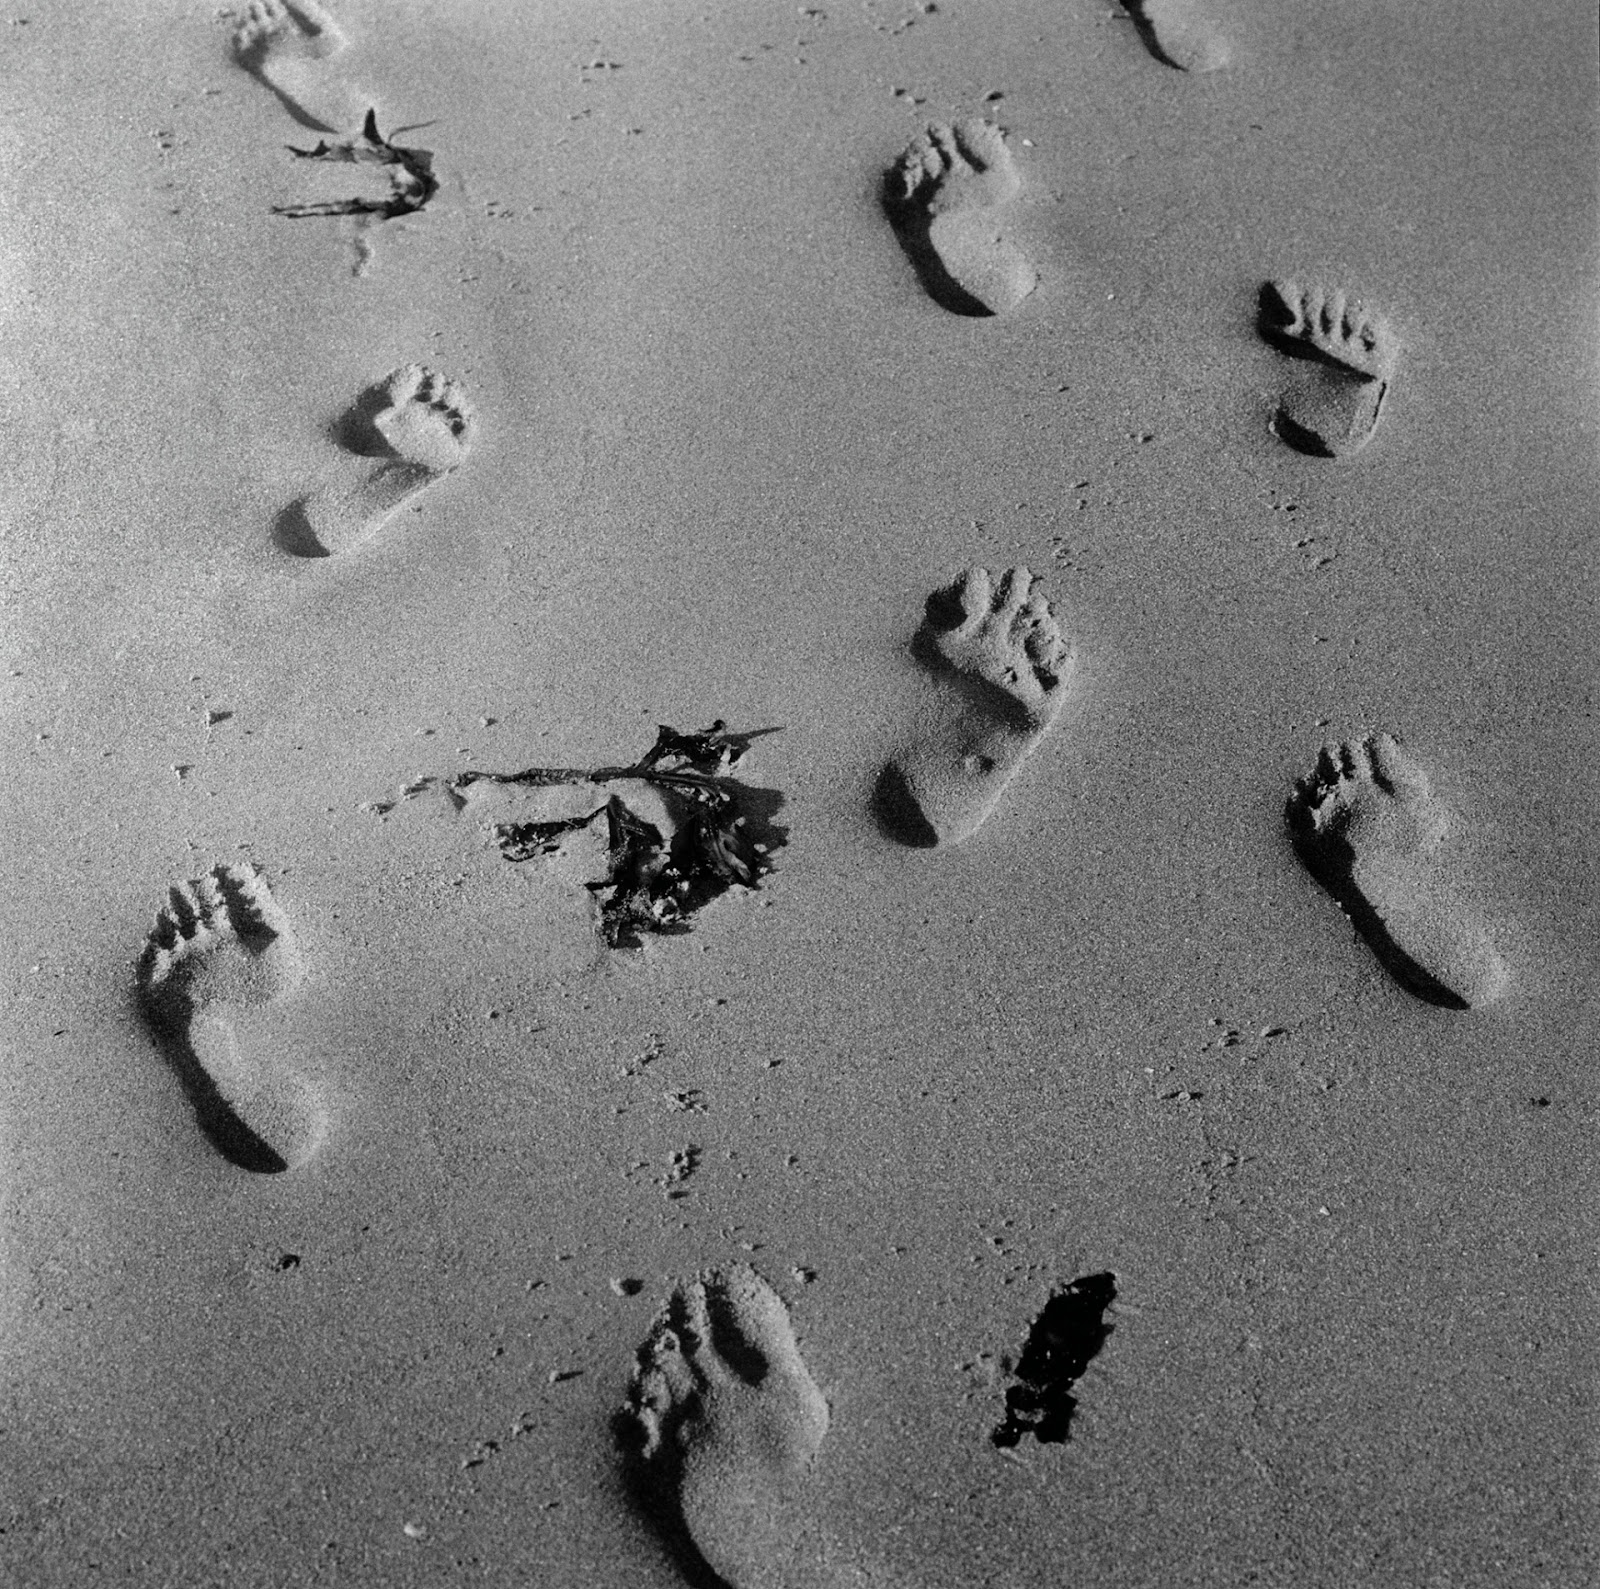 Photograph, Stuart Franklin: Northumberland. Footprints on Newton Beach. 2004.